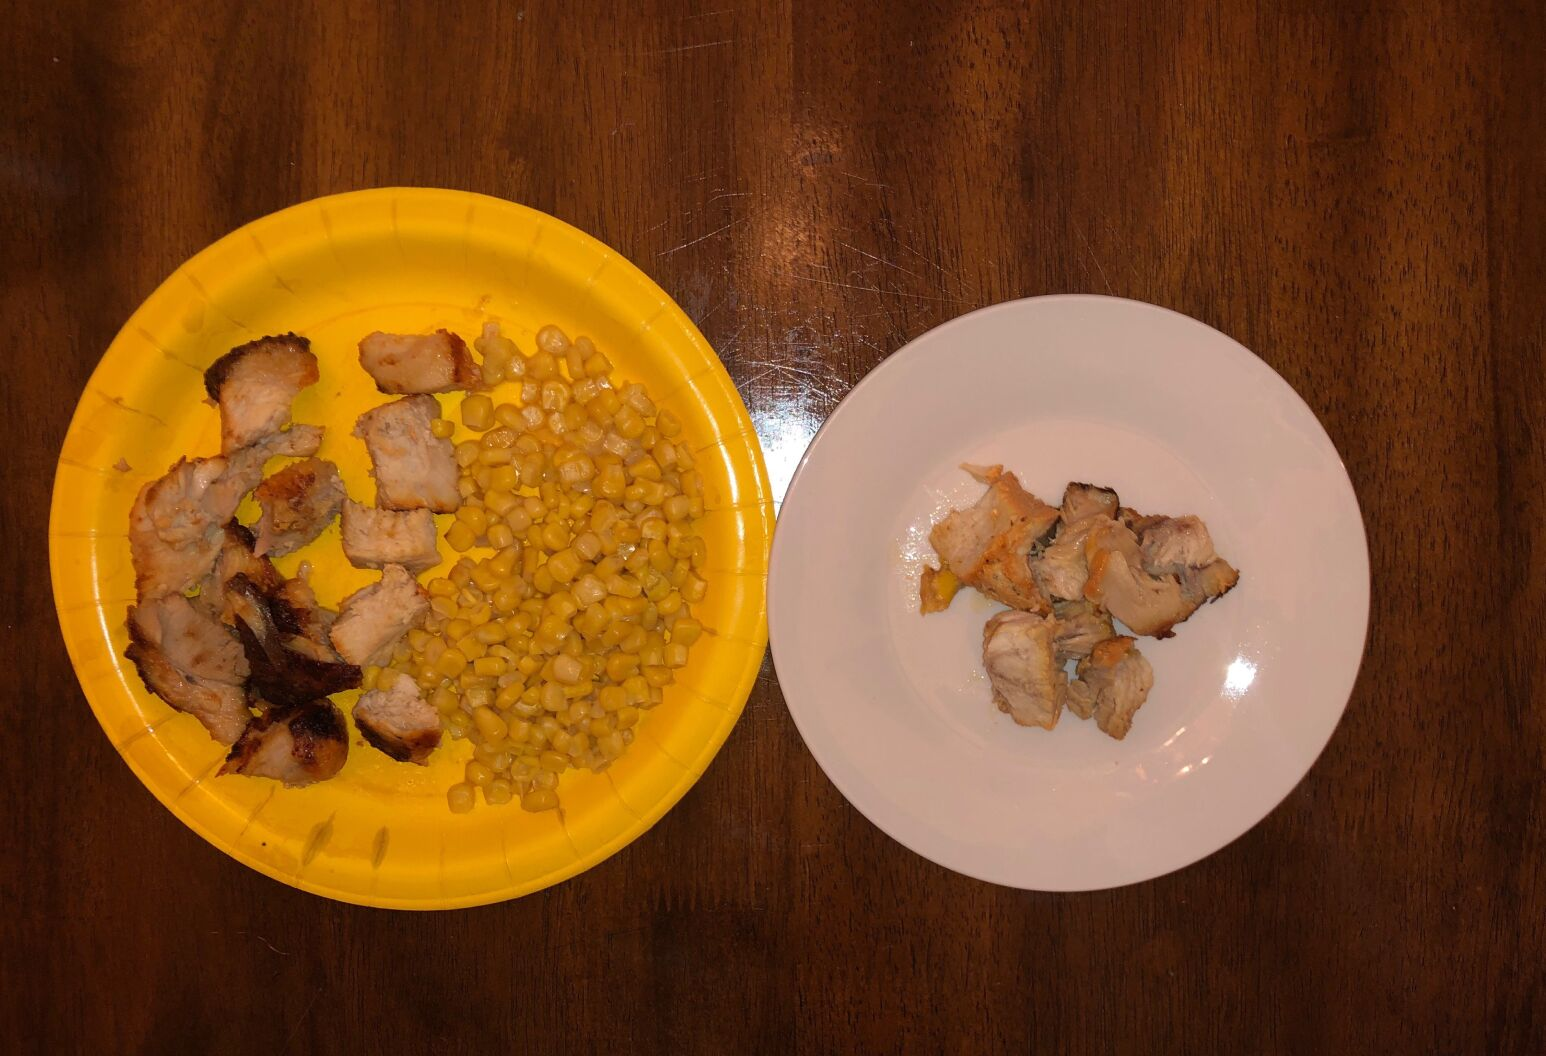 Kimberly's plate on the right, compared to the portion her brother will eat on the left.